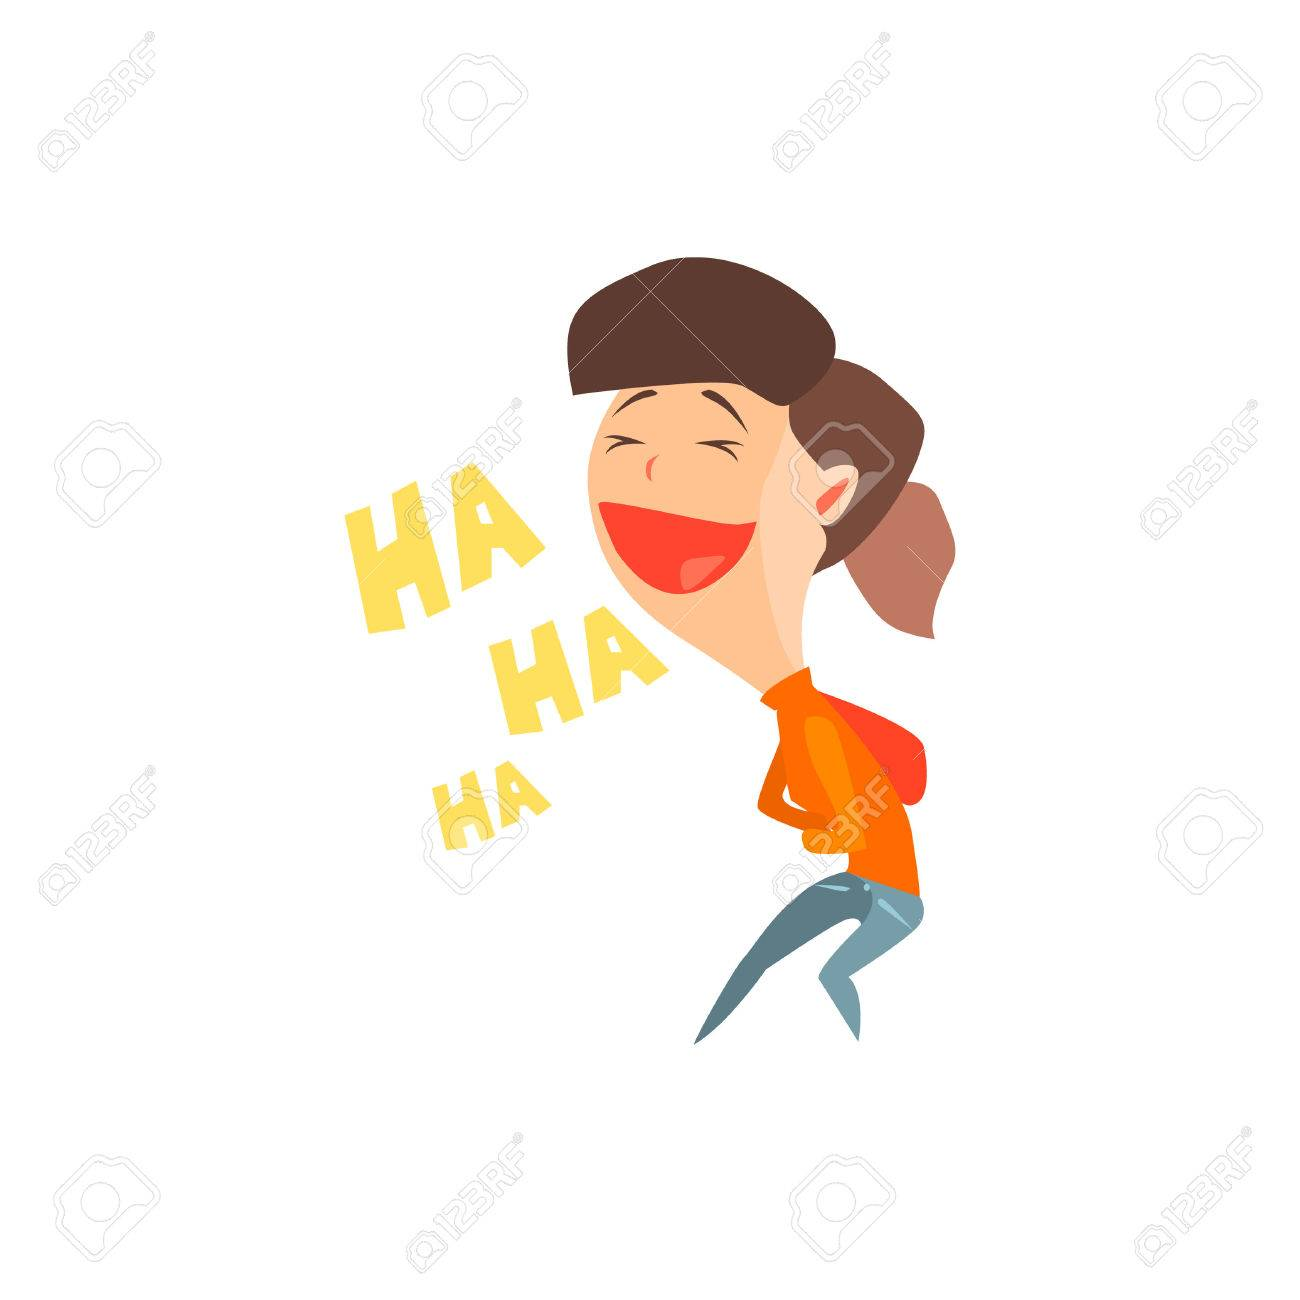 Laughing Girl Flat Vector Emotion Illustration In Graphic Style Isolated On White Background - 54181742